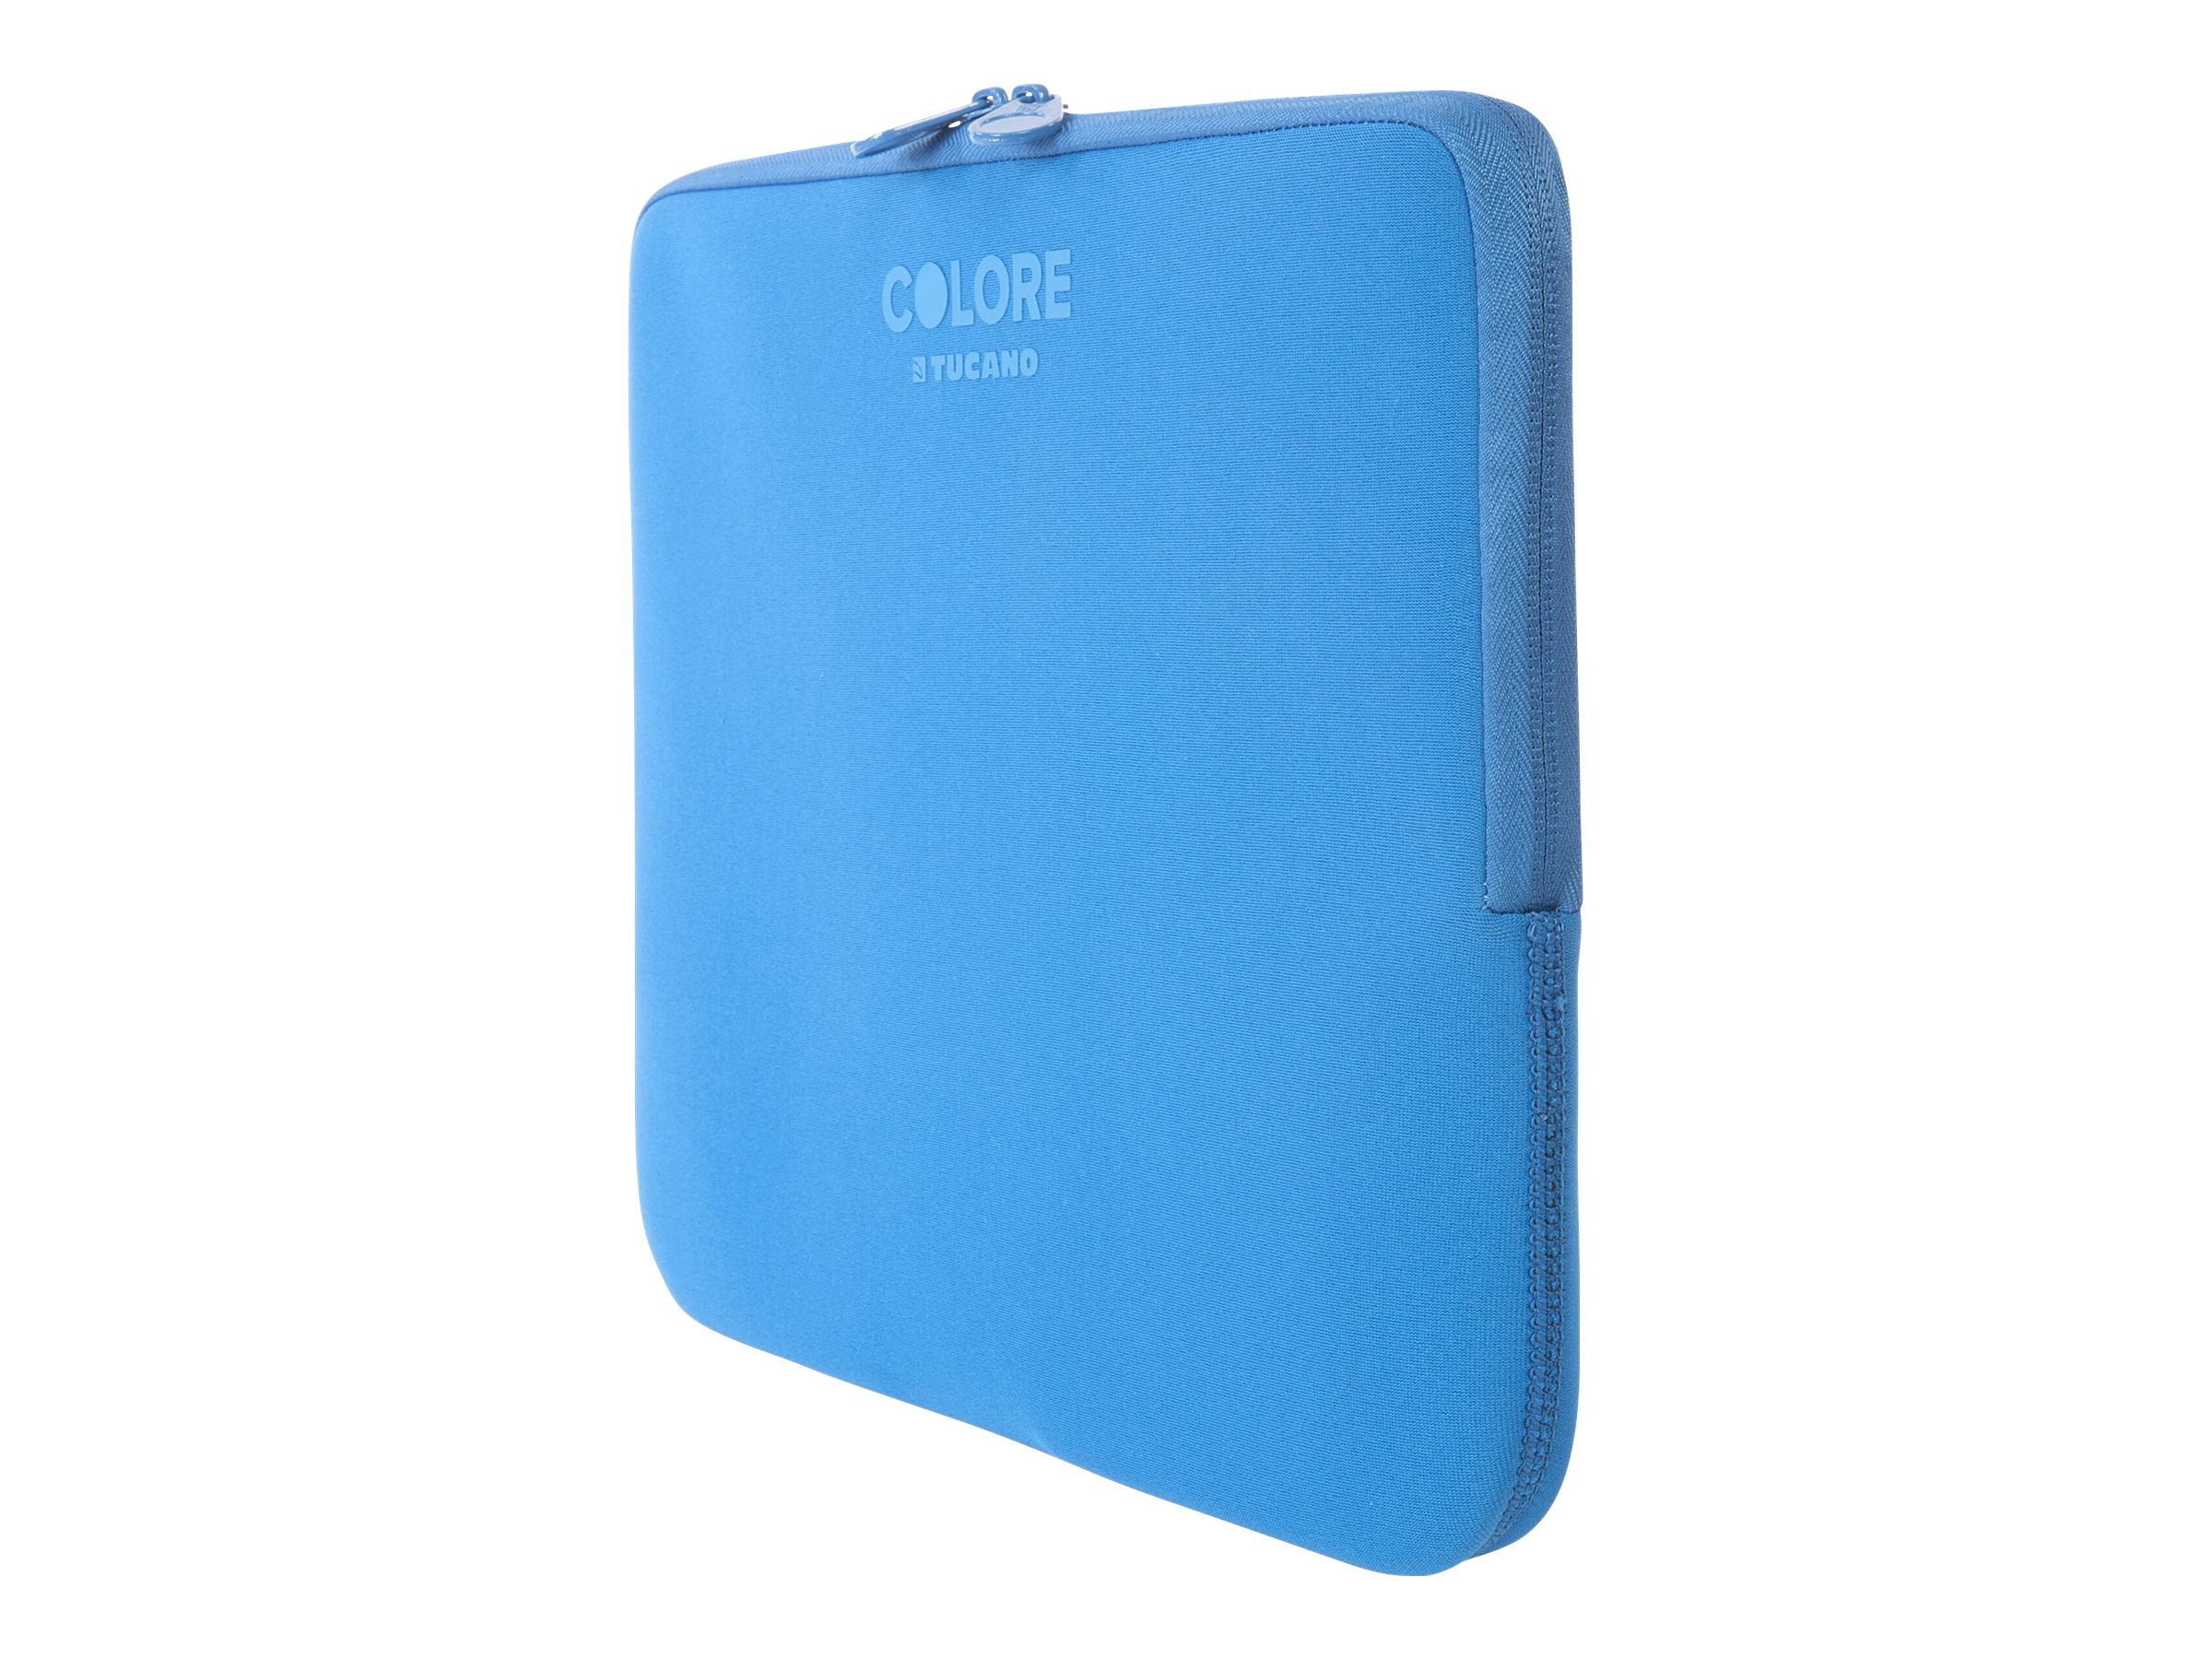 Tucano Second Skin Colore notebook sleeve